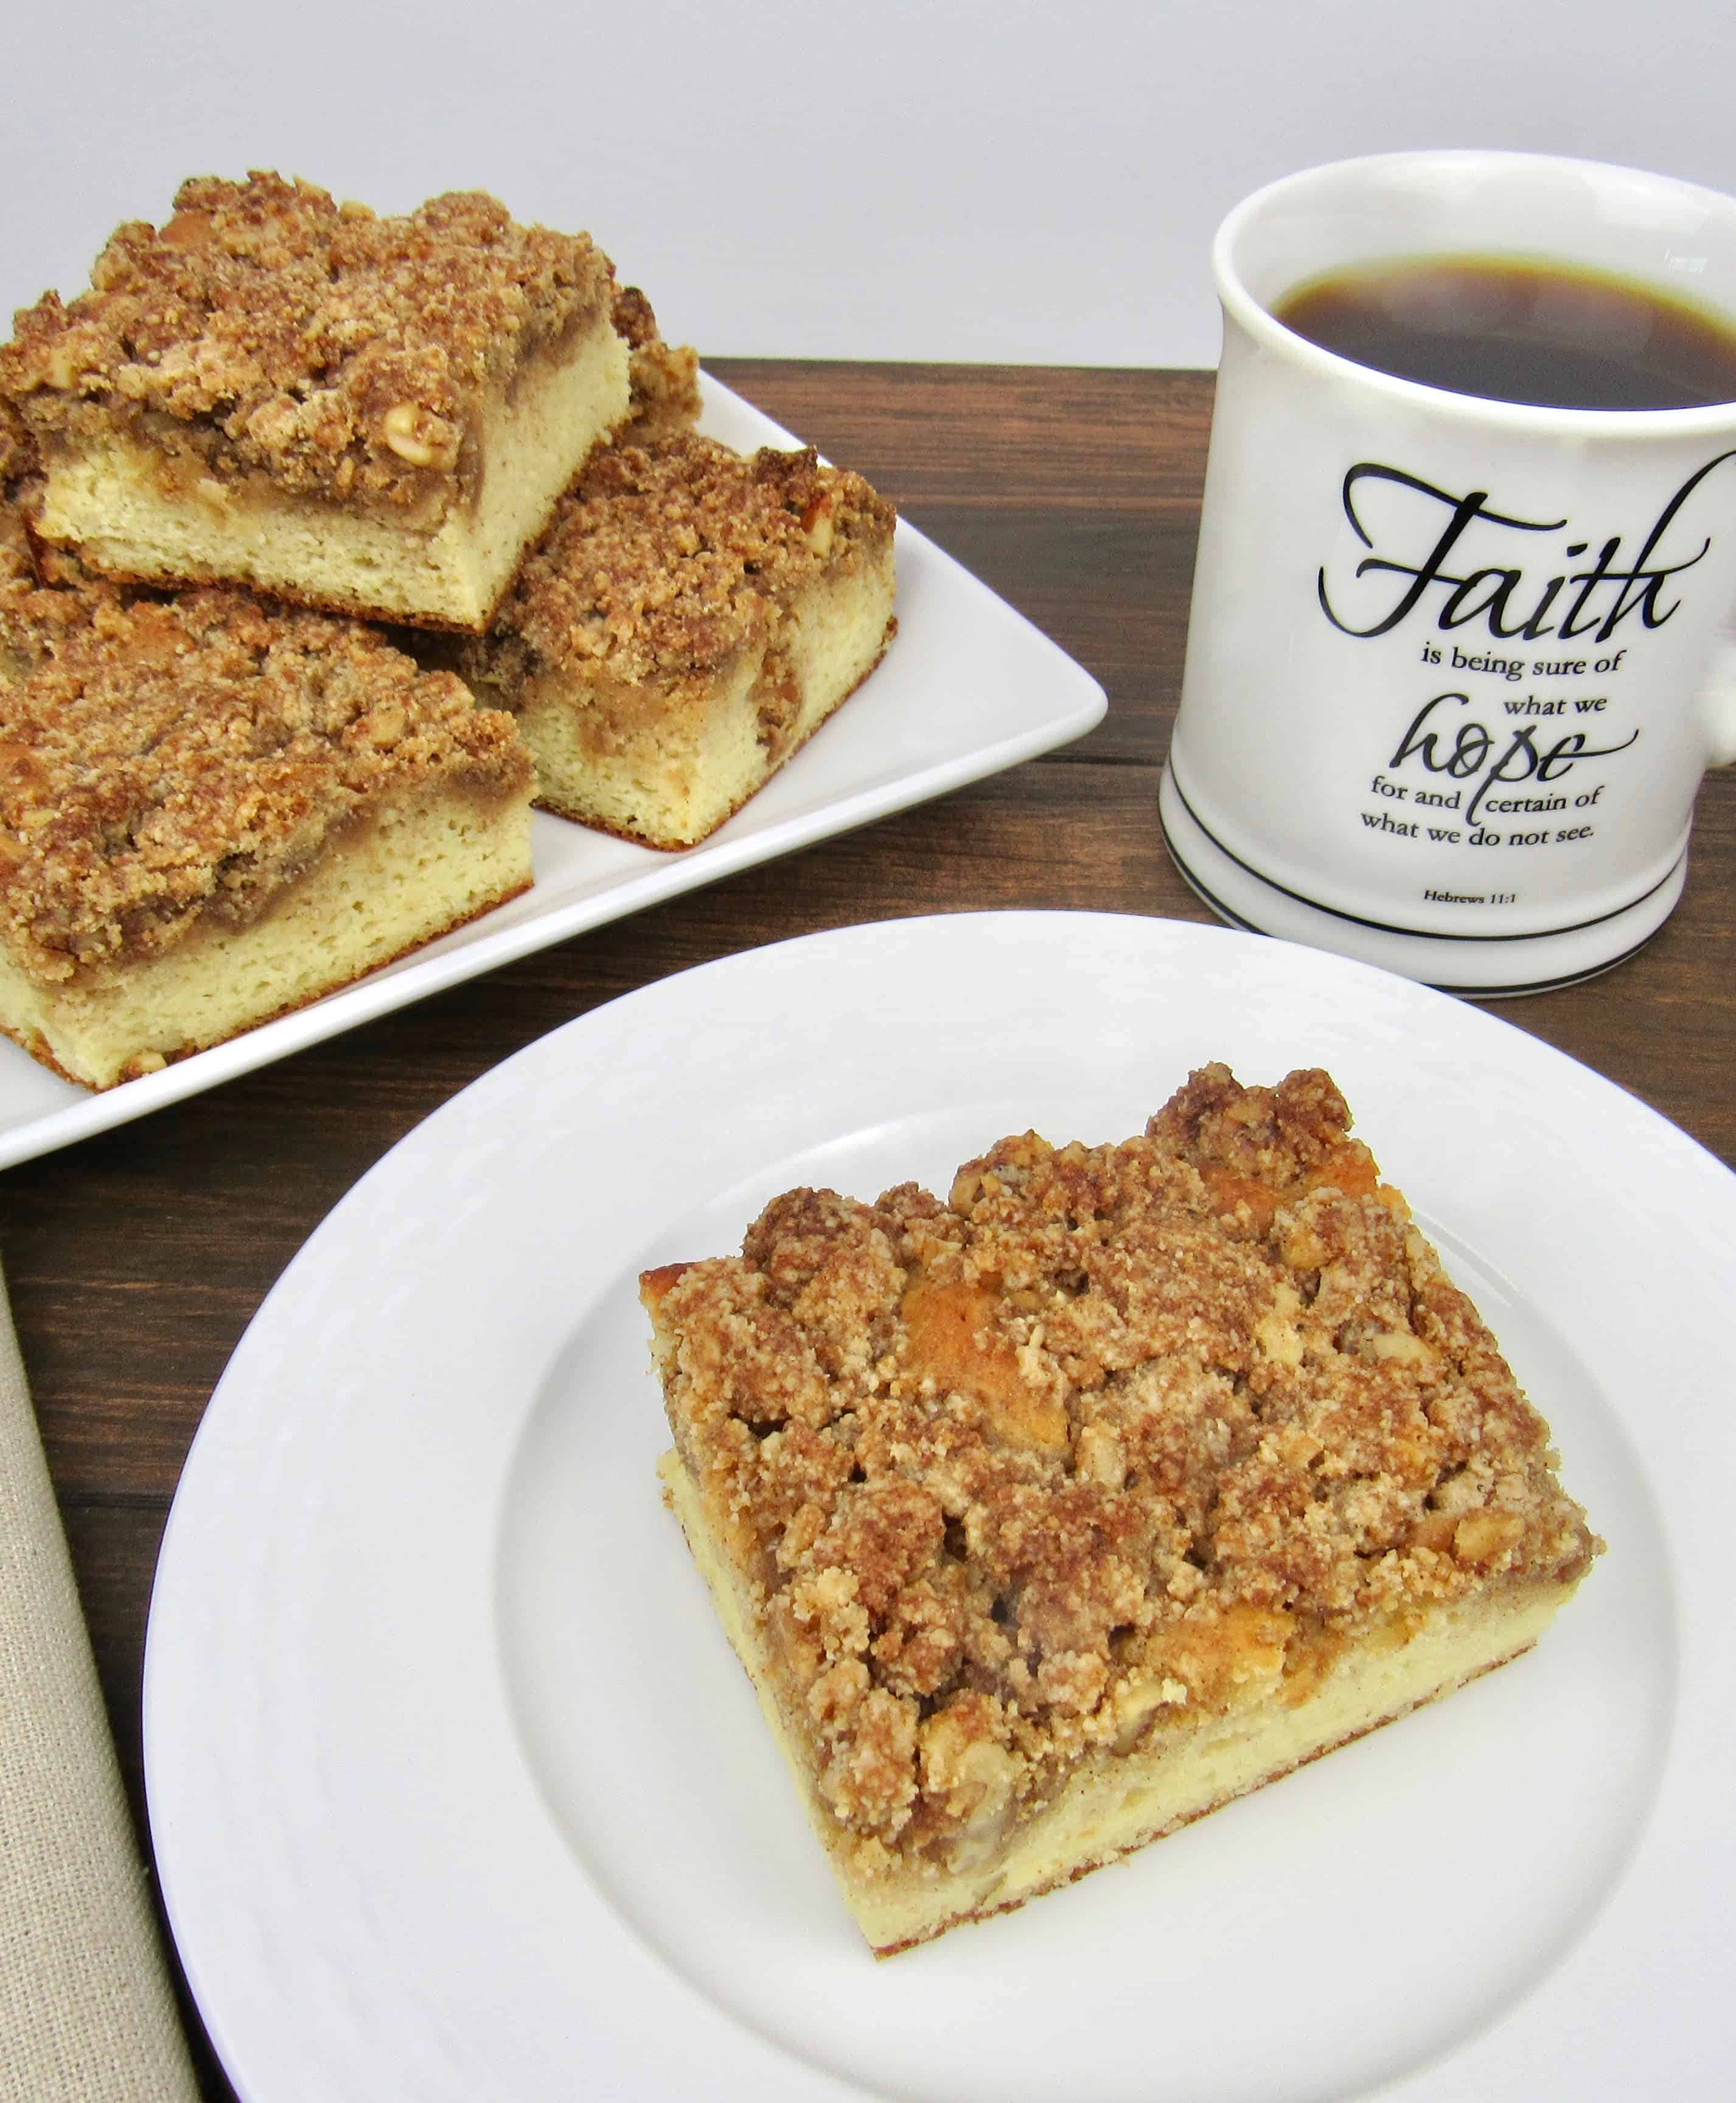 slice of coffee cake on white plate, cup of coffee and crumb cake slices in background